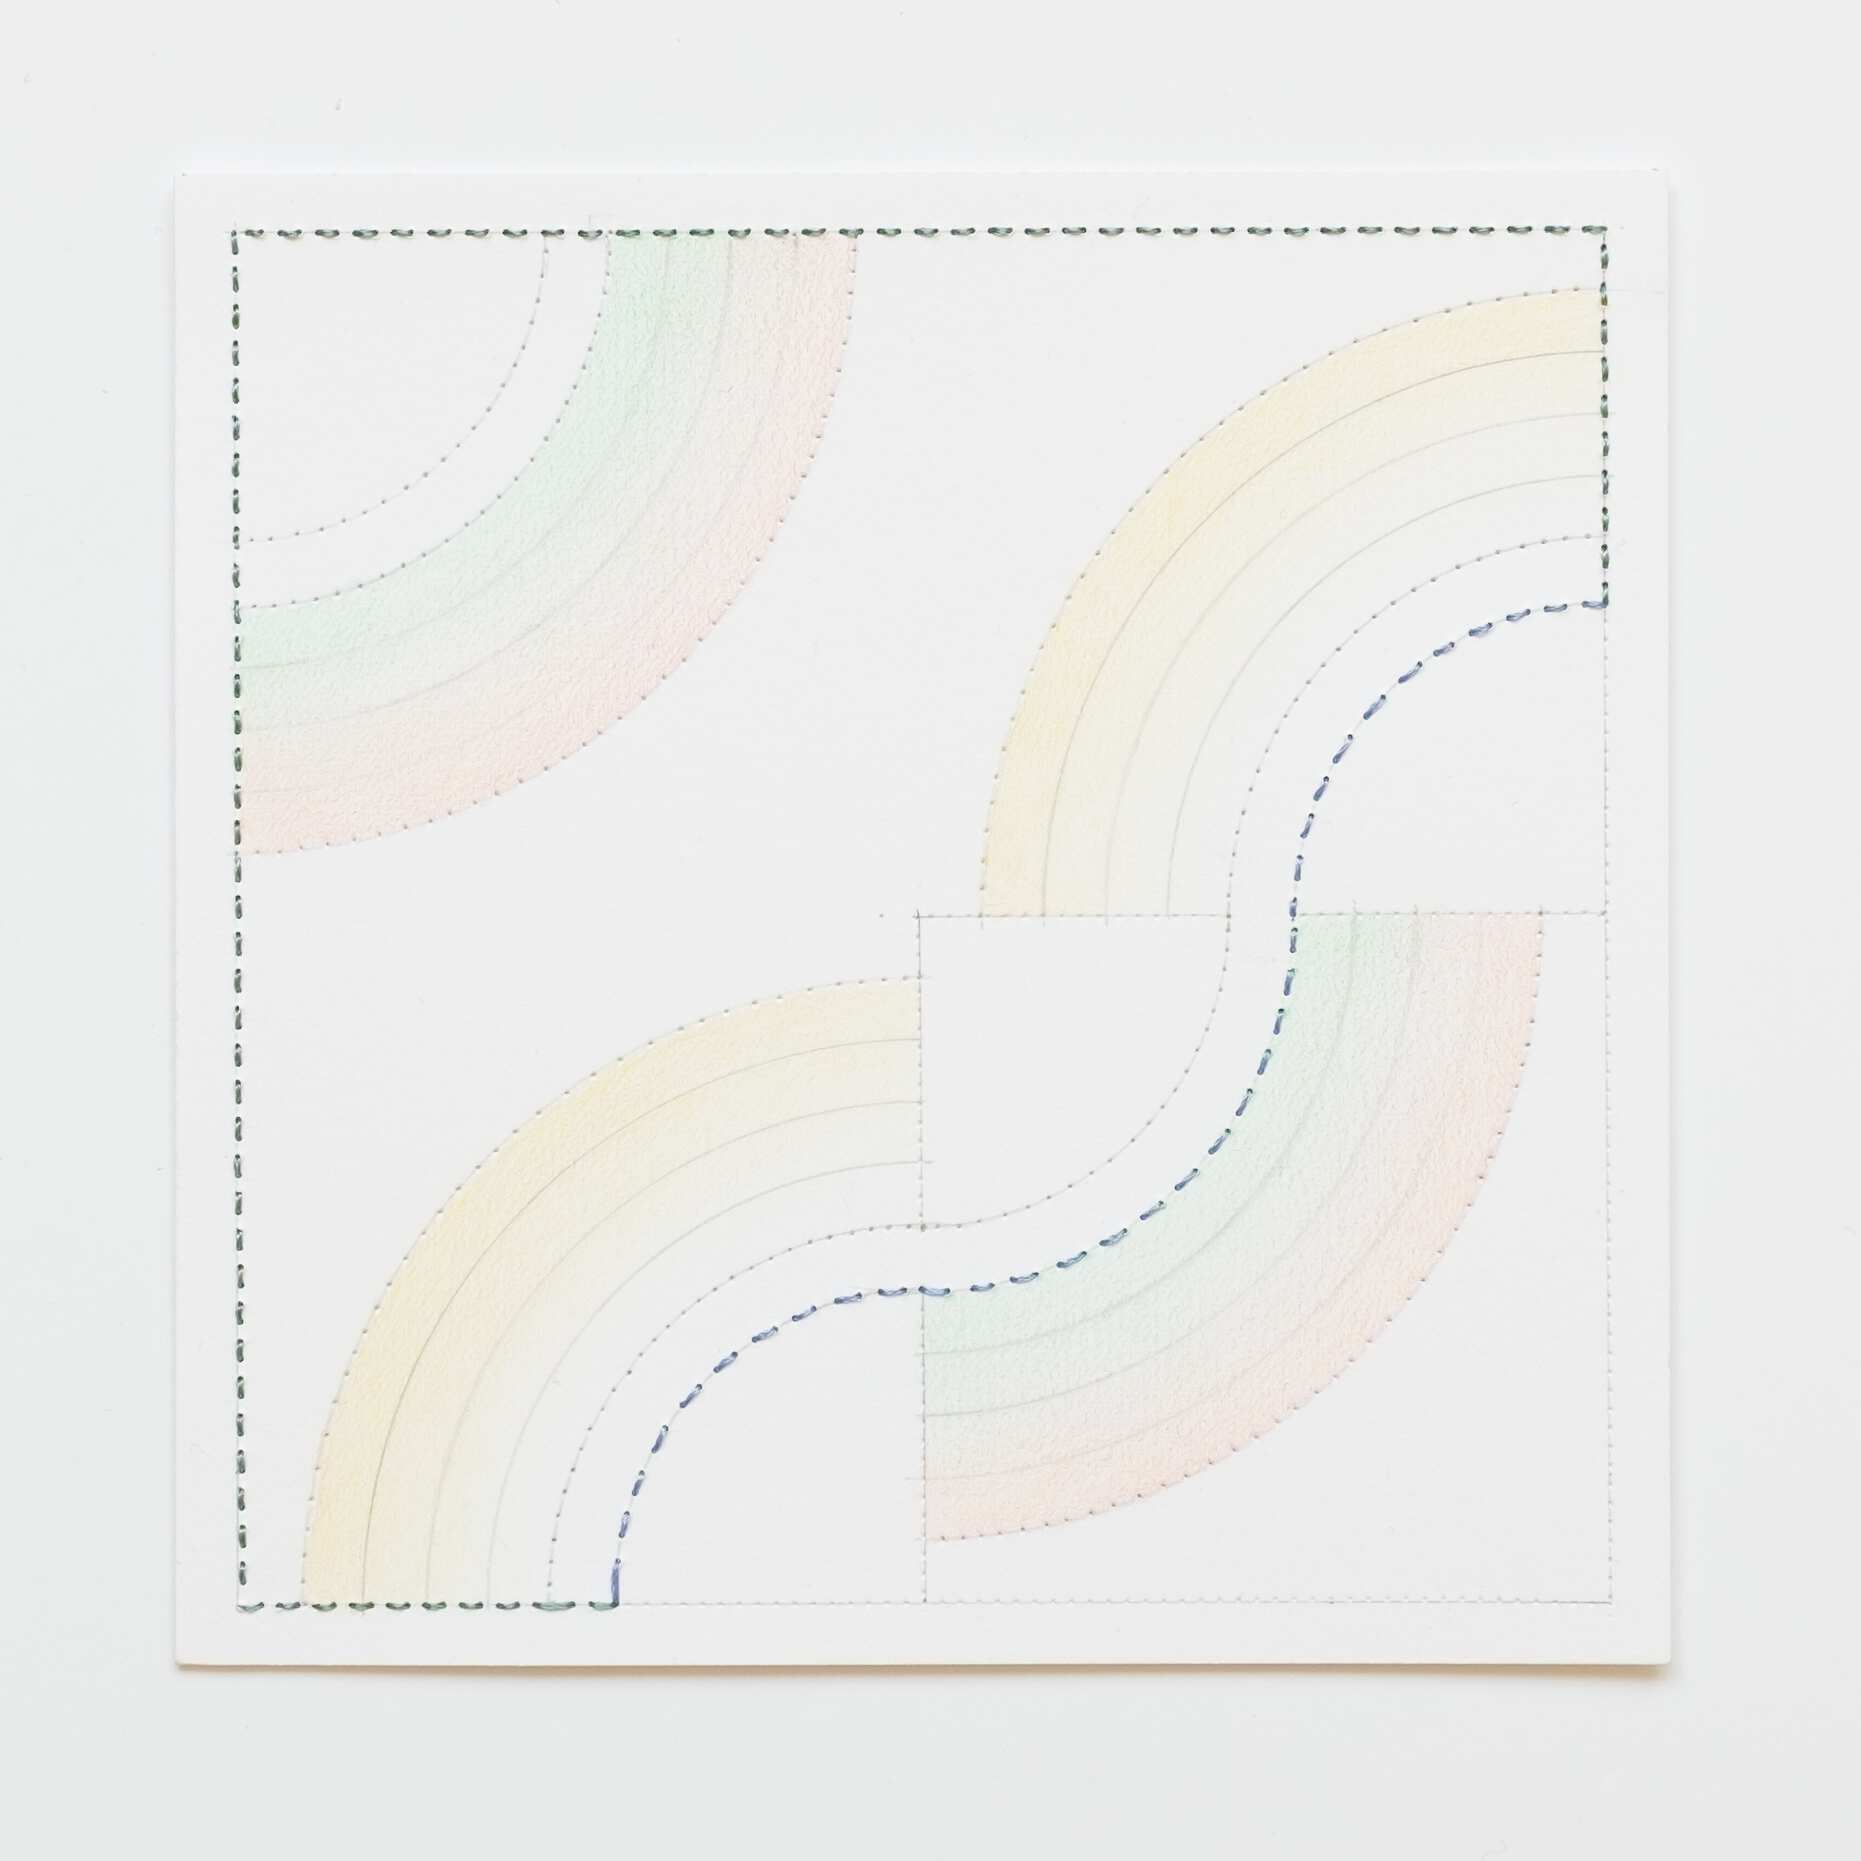 Quilted Composition [white // rainbows YGO], Hand-embroidered silk on paper, pencil, coloured pencil, 2019